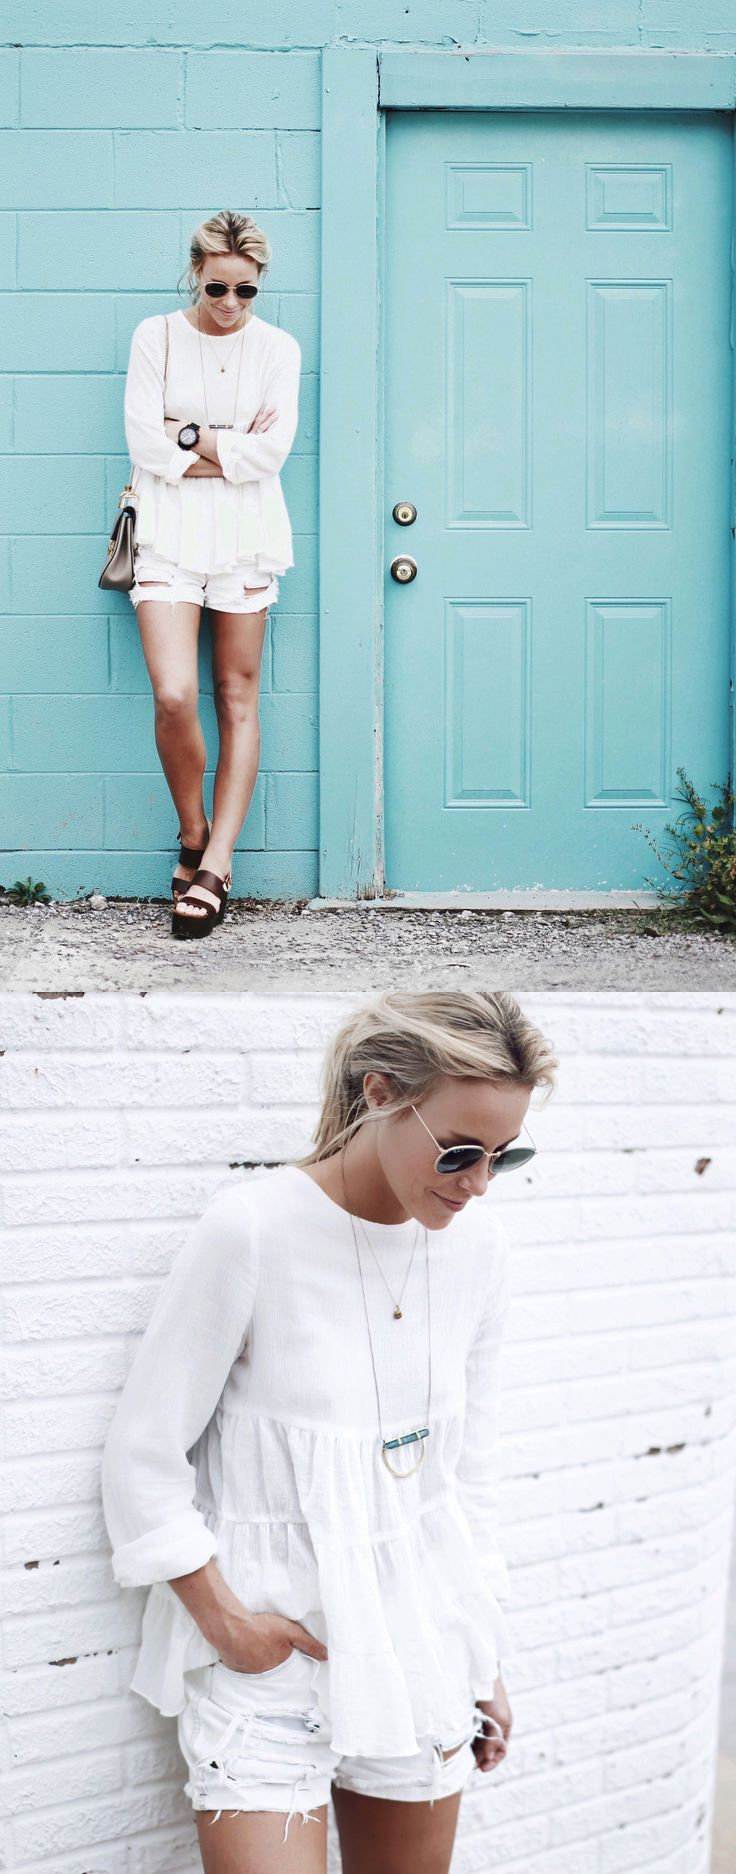 spring / summer - street chic style - street style - beach style - all white - summer outfit ideas - white ruffle blouse + white distressed denim shorts + brown flatform sandals + nude shoulder bag + golden sunglasses + black watch + statement necklace